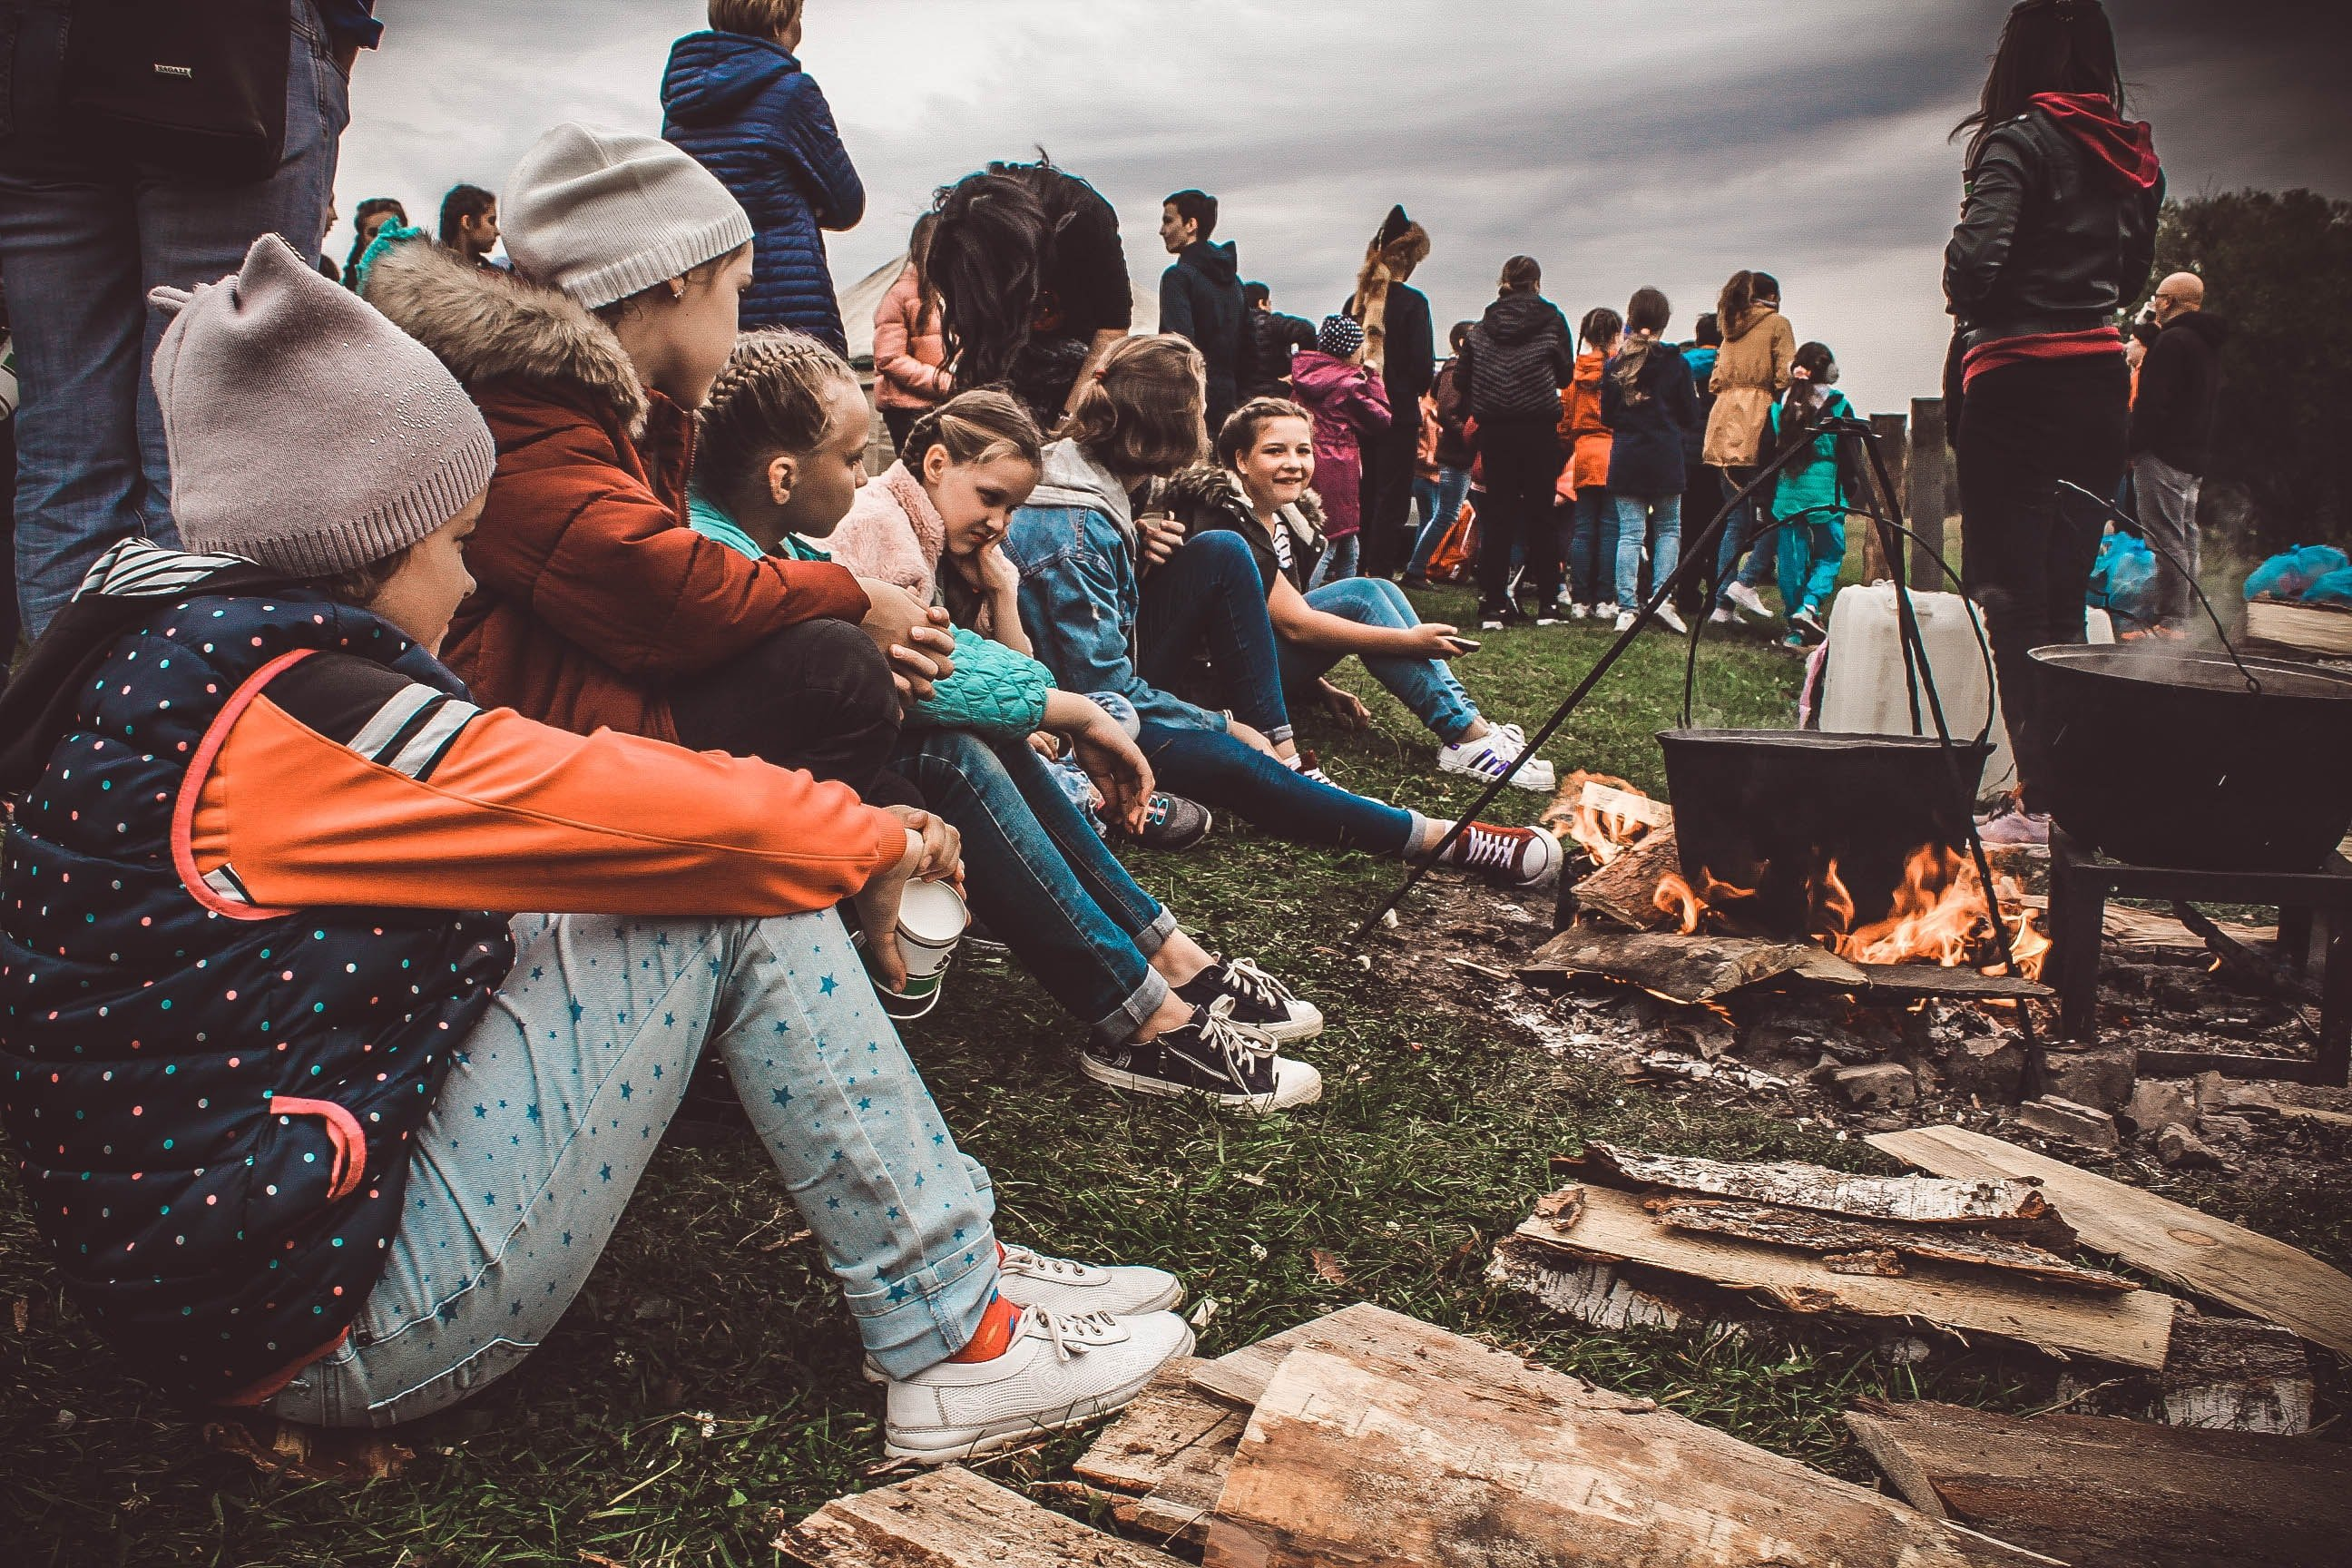 Group of kids sitting next to a fire pit   Source: Unsplash